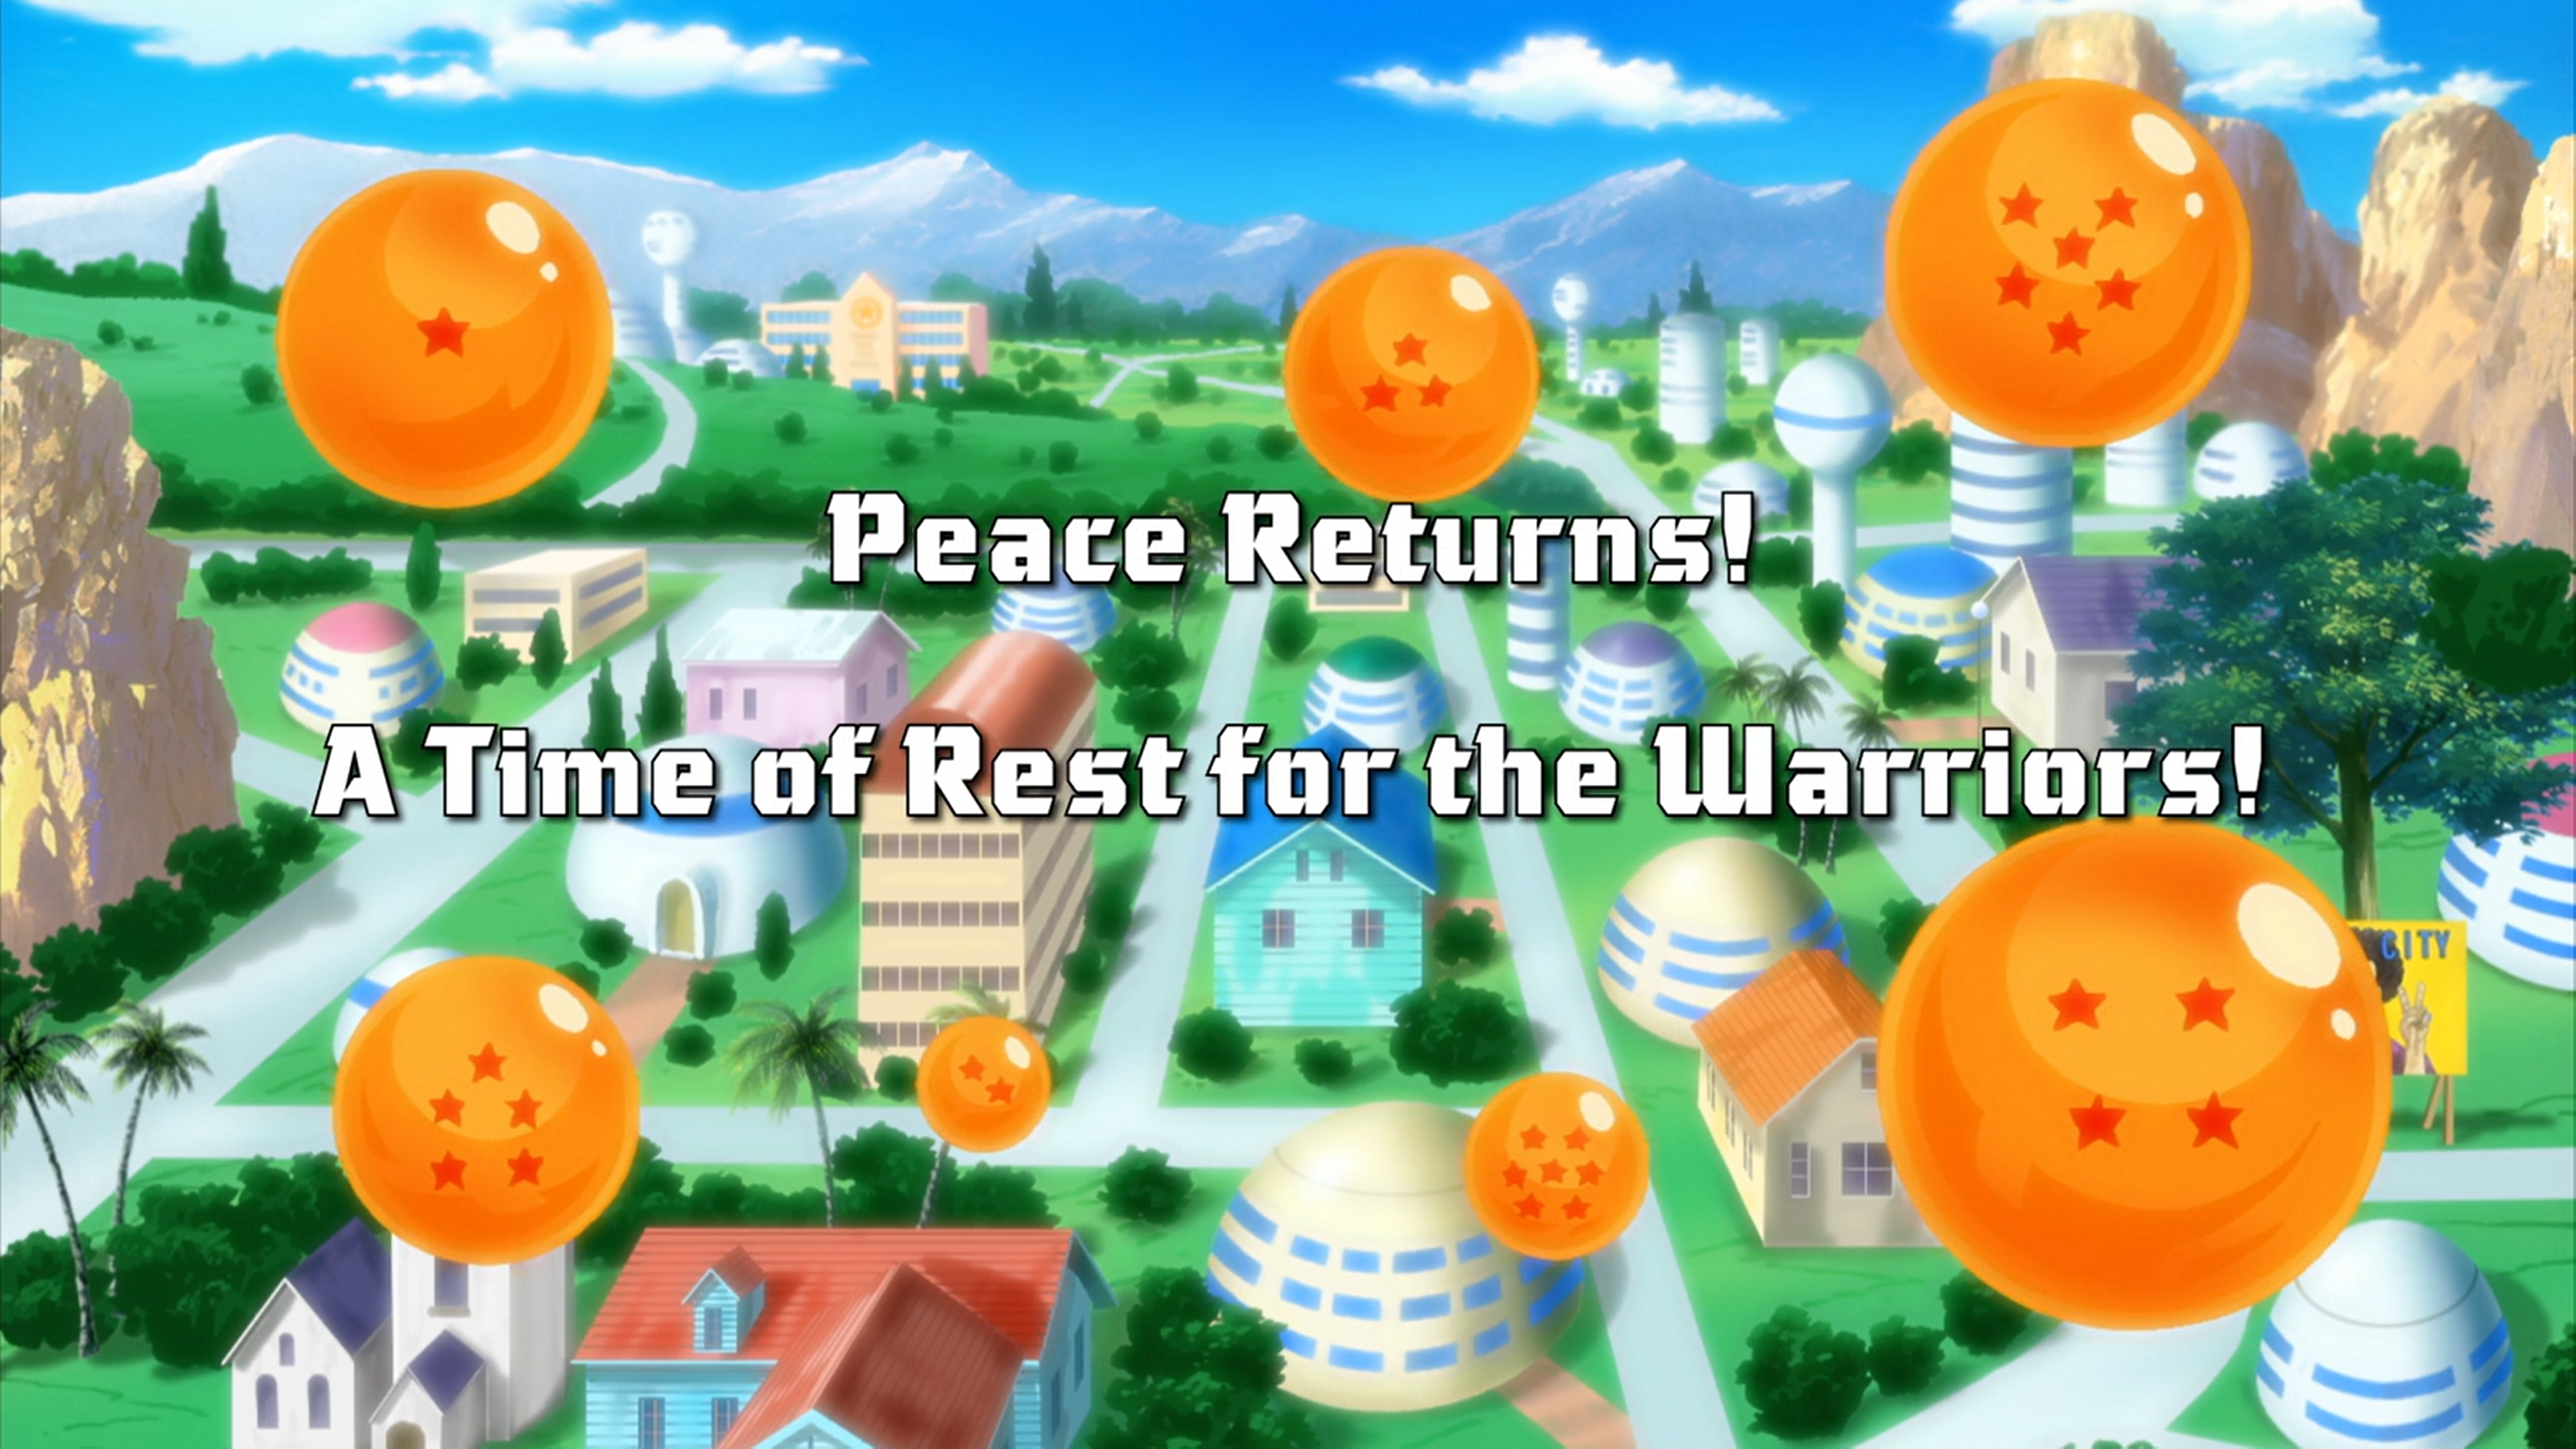 Peace Returns! A Time of Rest for the Warriors!